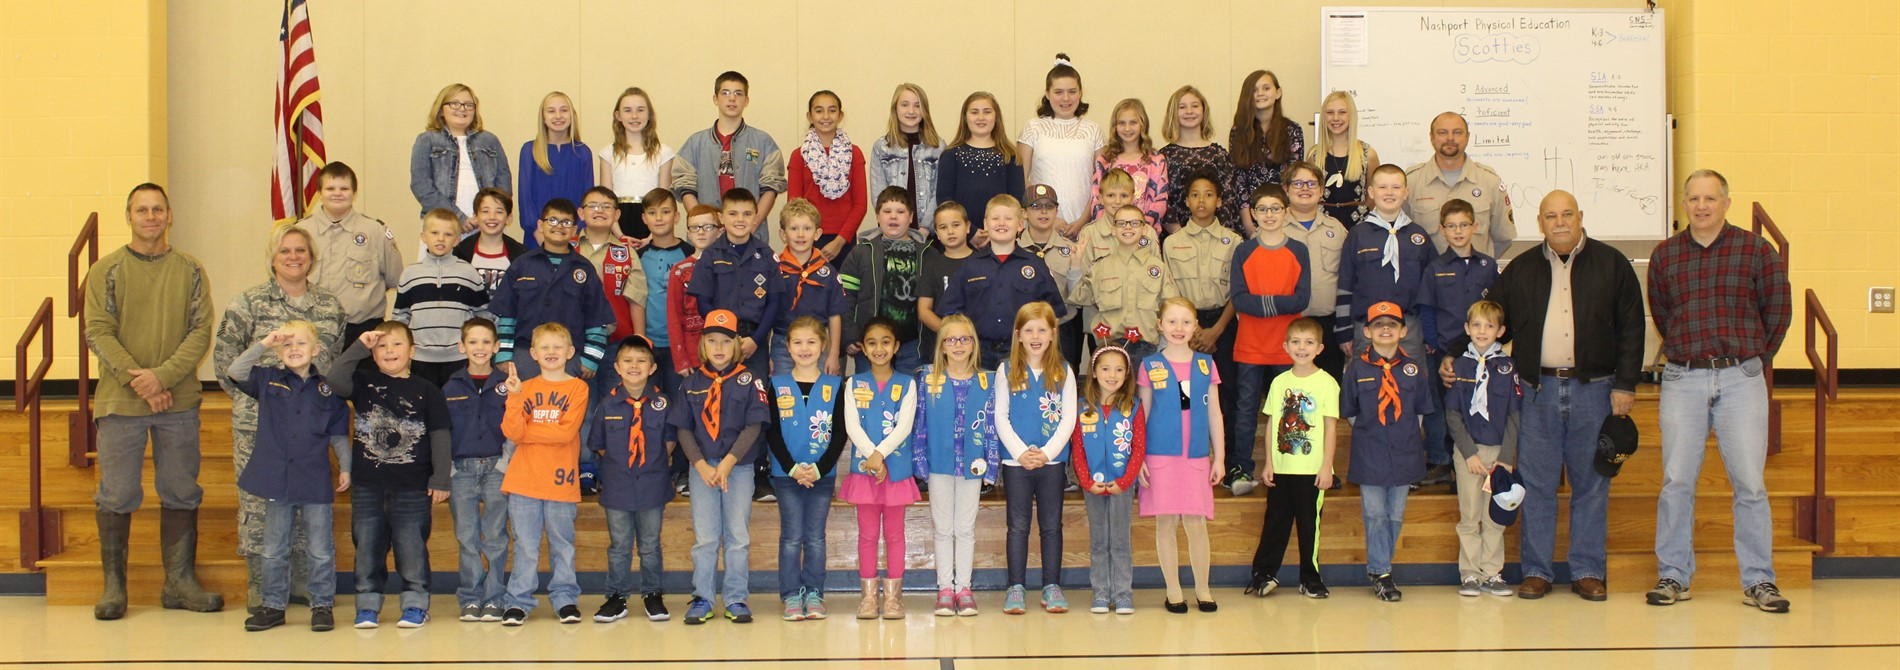 Nashport students and staff celebrate Veterans day with local veterans.  Thank you for your service!